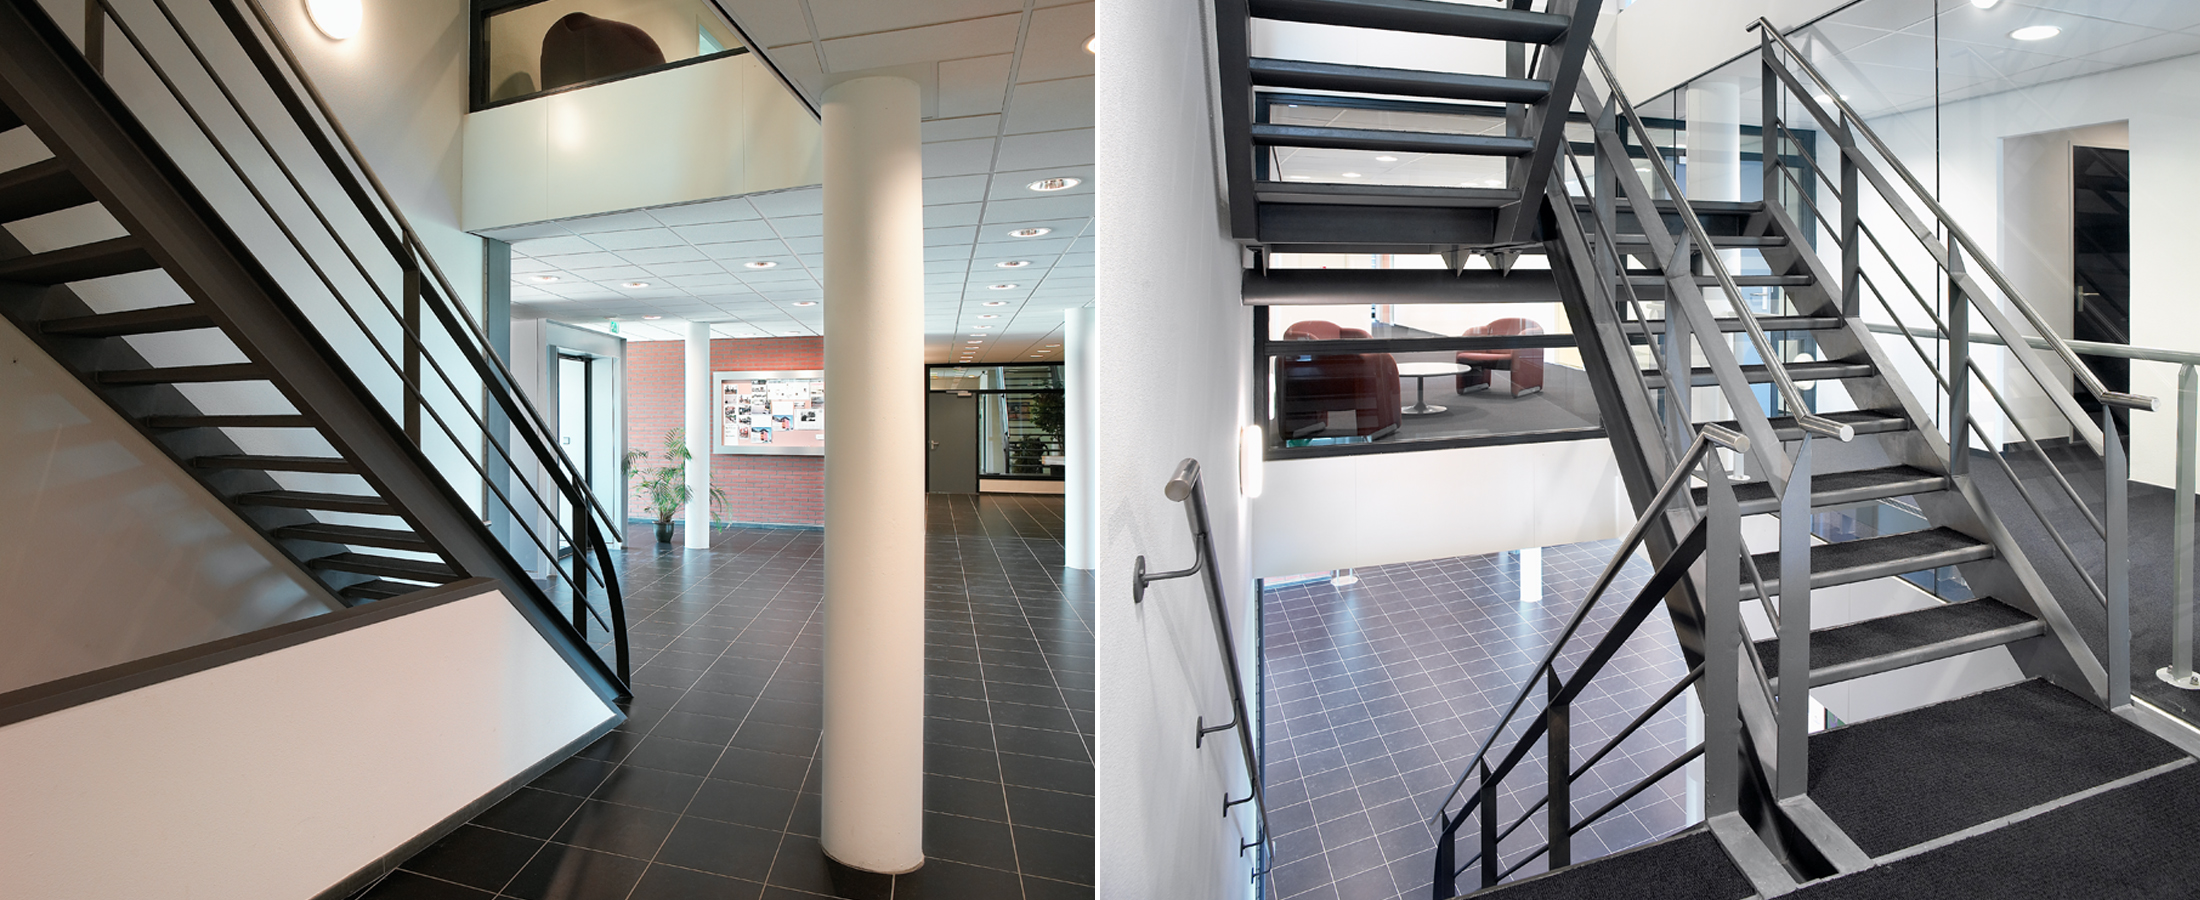 Radex Innovation Centre, Delft